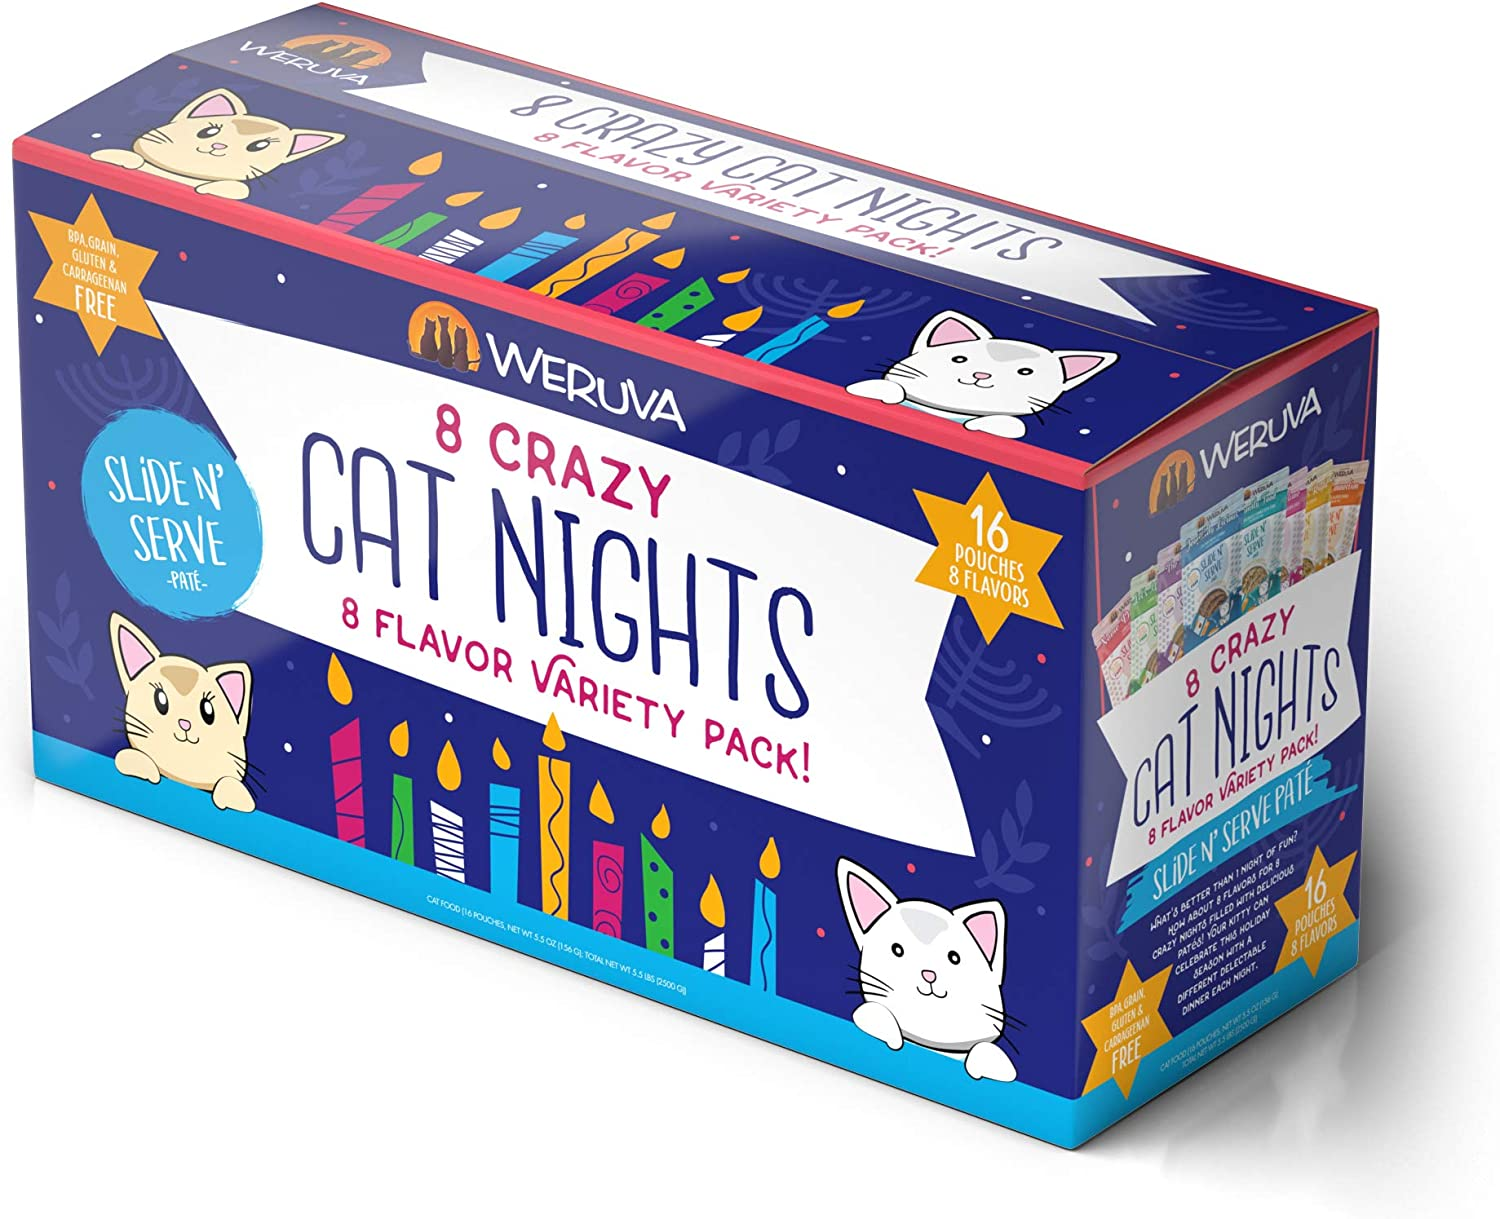 Weruva Slide N' Serve Paté Wet Cat Food, 8 Crazy Cat Nights Holiday Variety Pack, 5.5oz Pouch (Pack of 16)